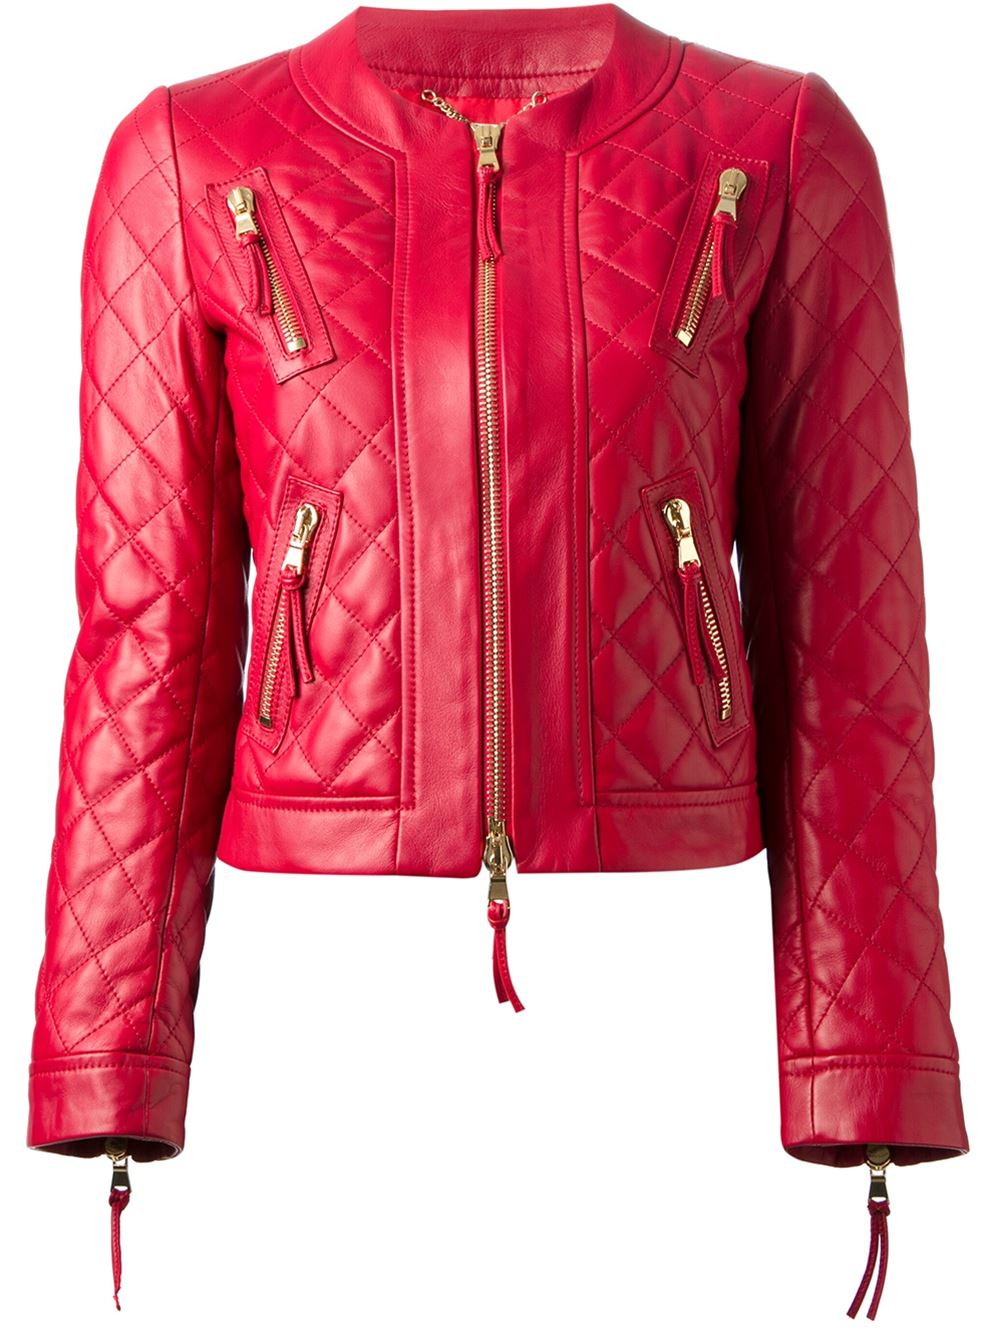 You searched for: quilted jacket red! Etsy is the home to thousands of handmade, vintage, and one-of-a-kind products and gifts related to your search. No matter what you're looking for or where you are in the world, our global marketplace of sellers can help you find unique and affordable options. Let's get started!